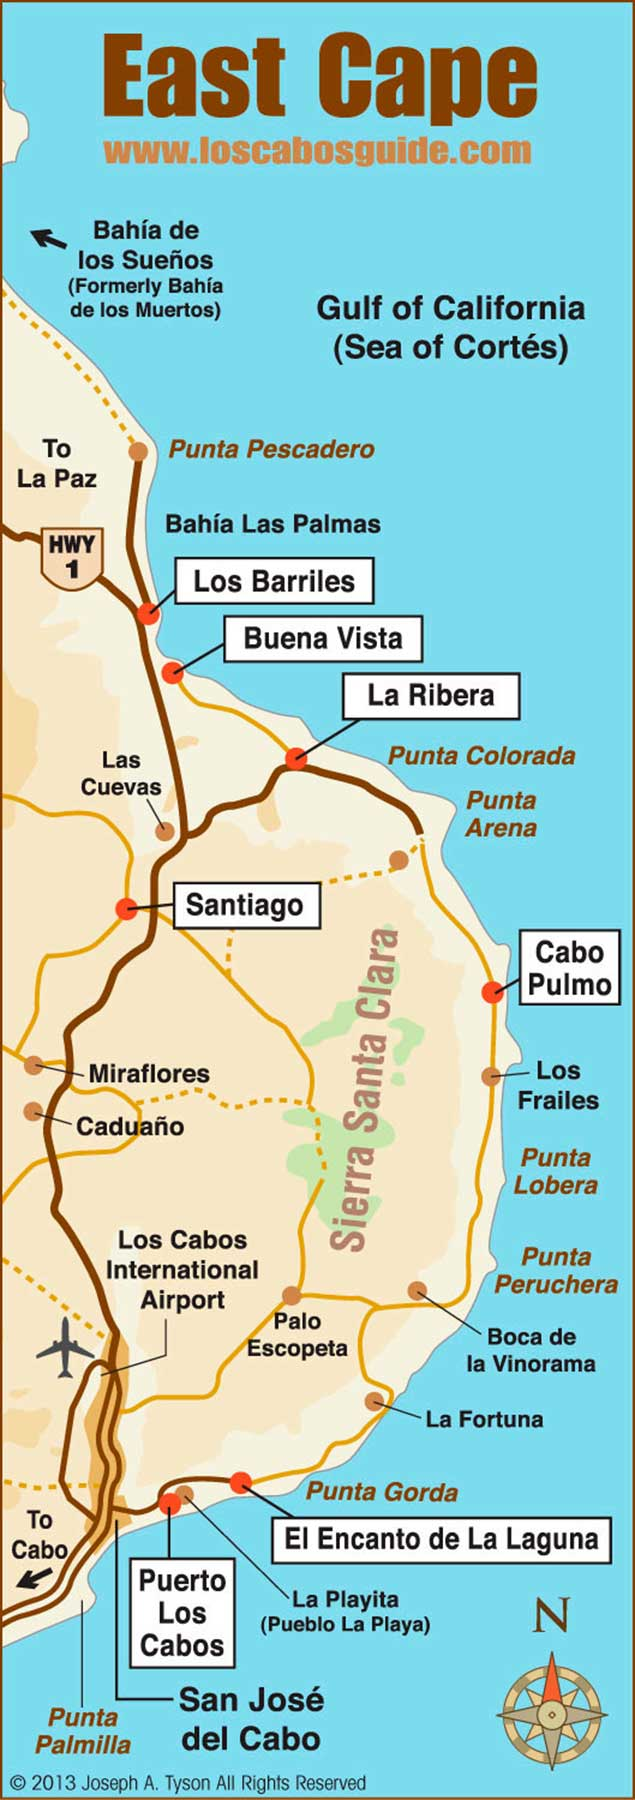 East Cape Baja Map - Los Cabos Guide